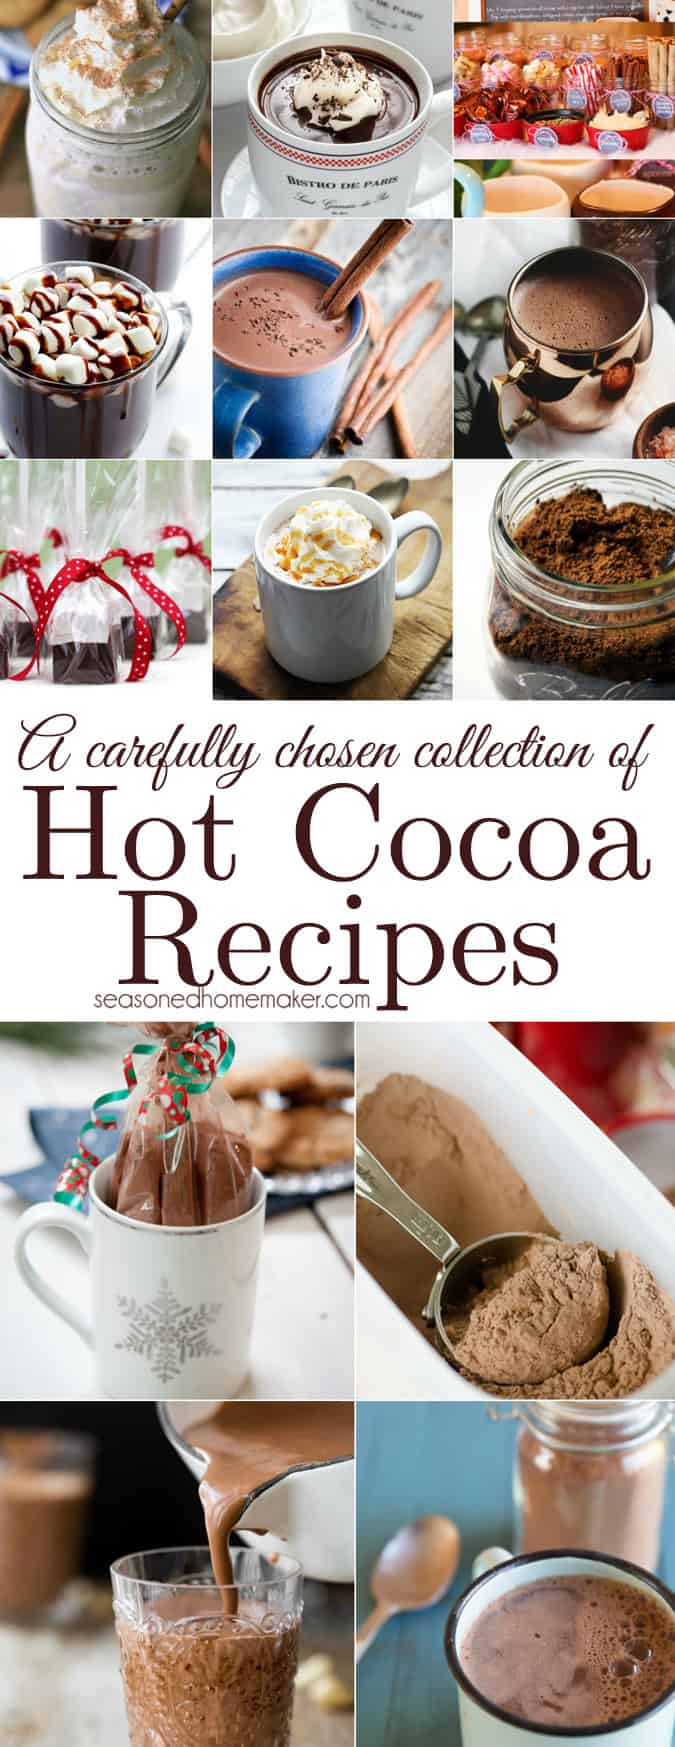 Hot Chocolate Recipes - The Seasoned Homemaker